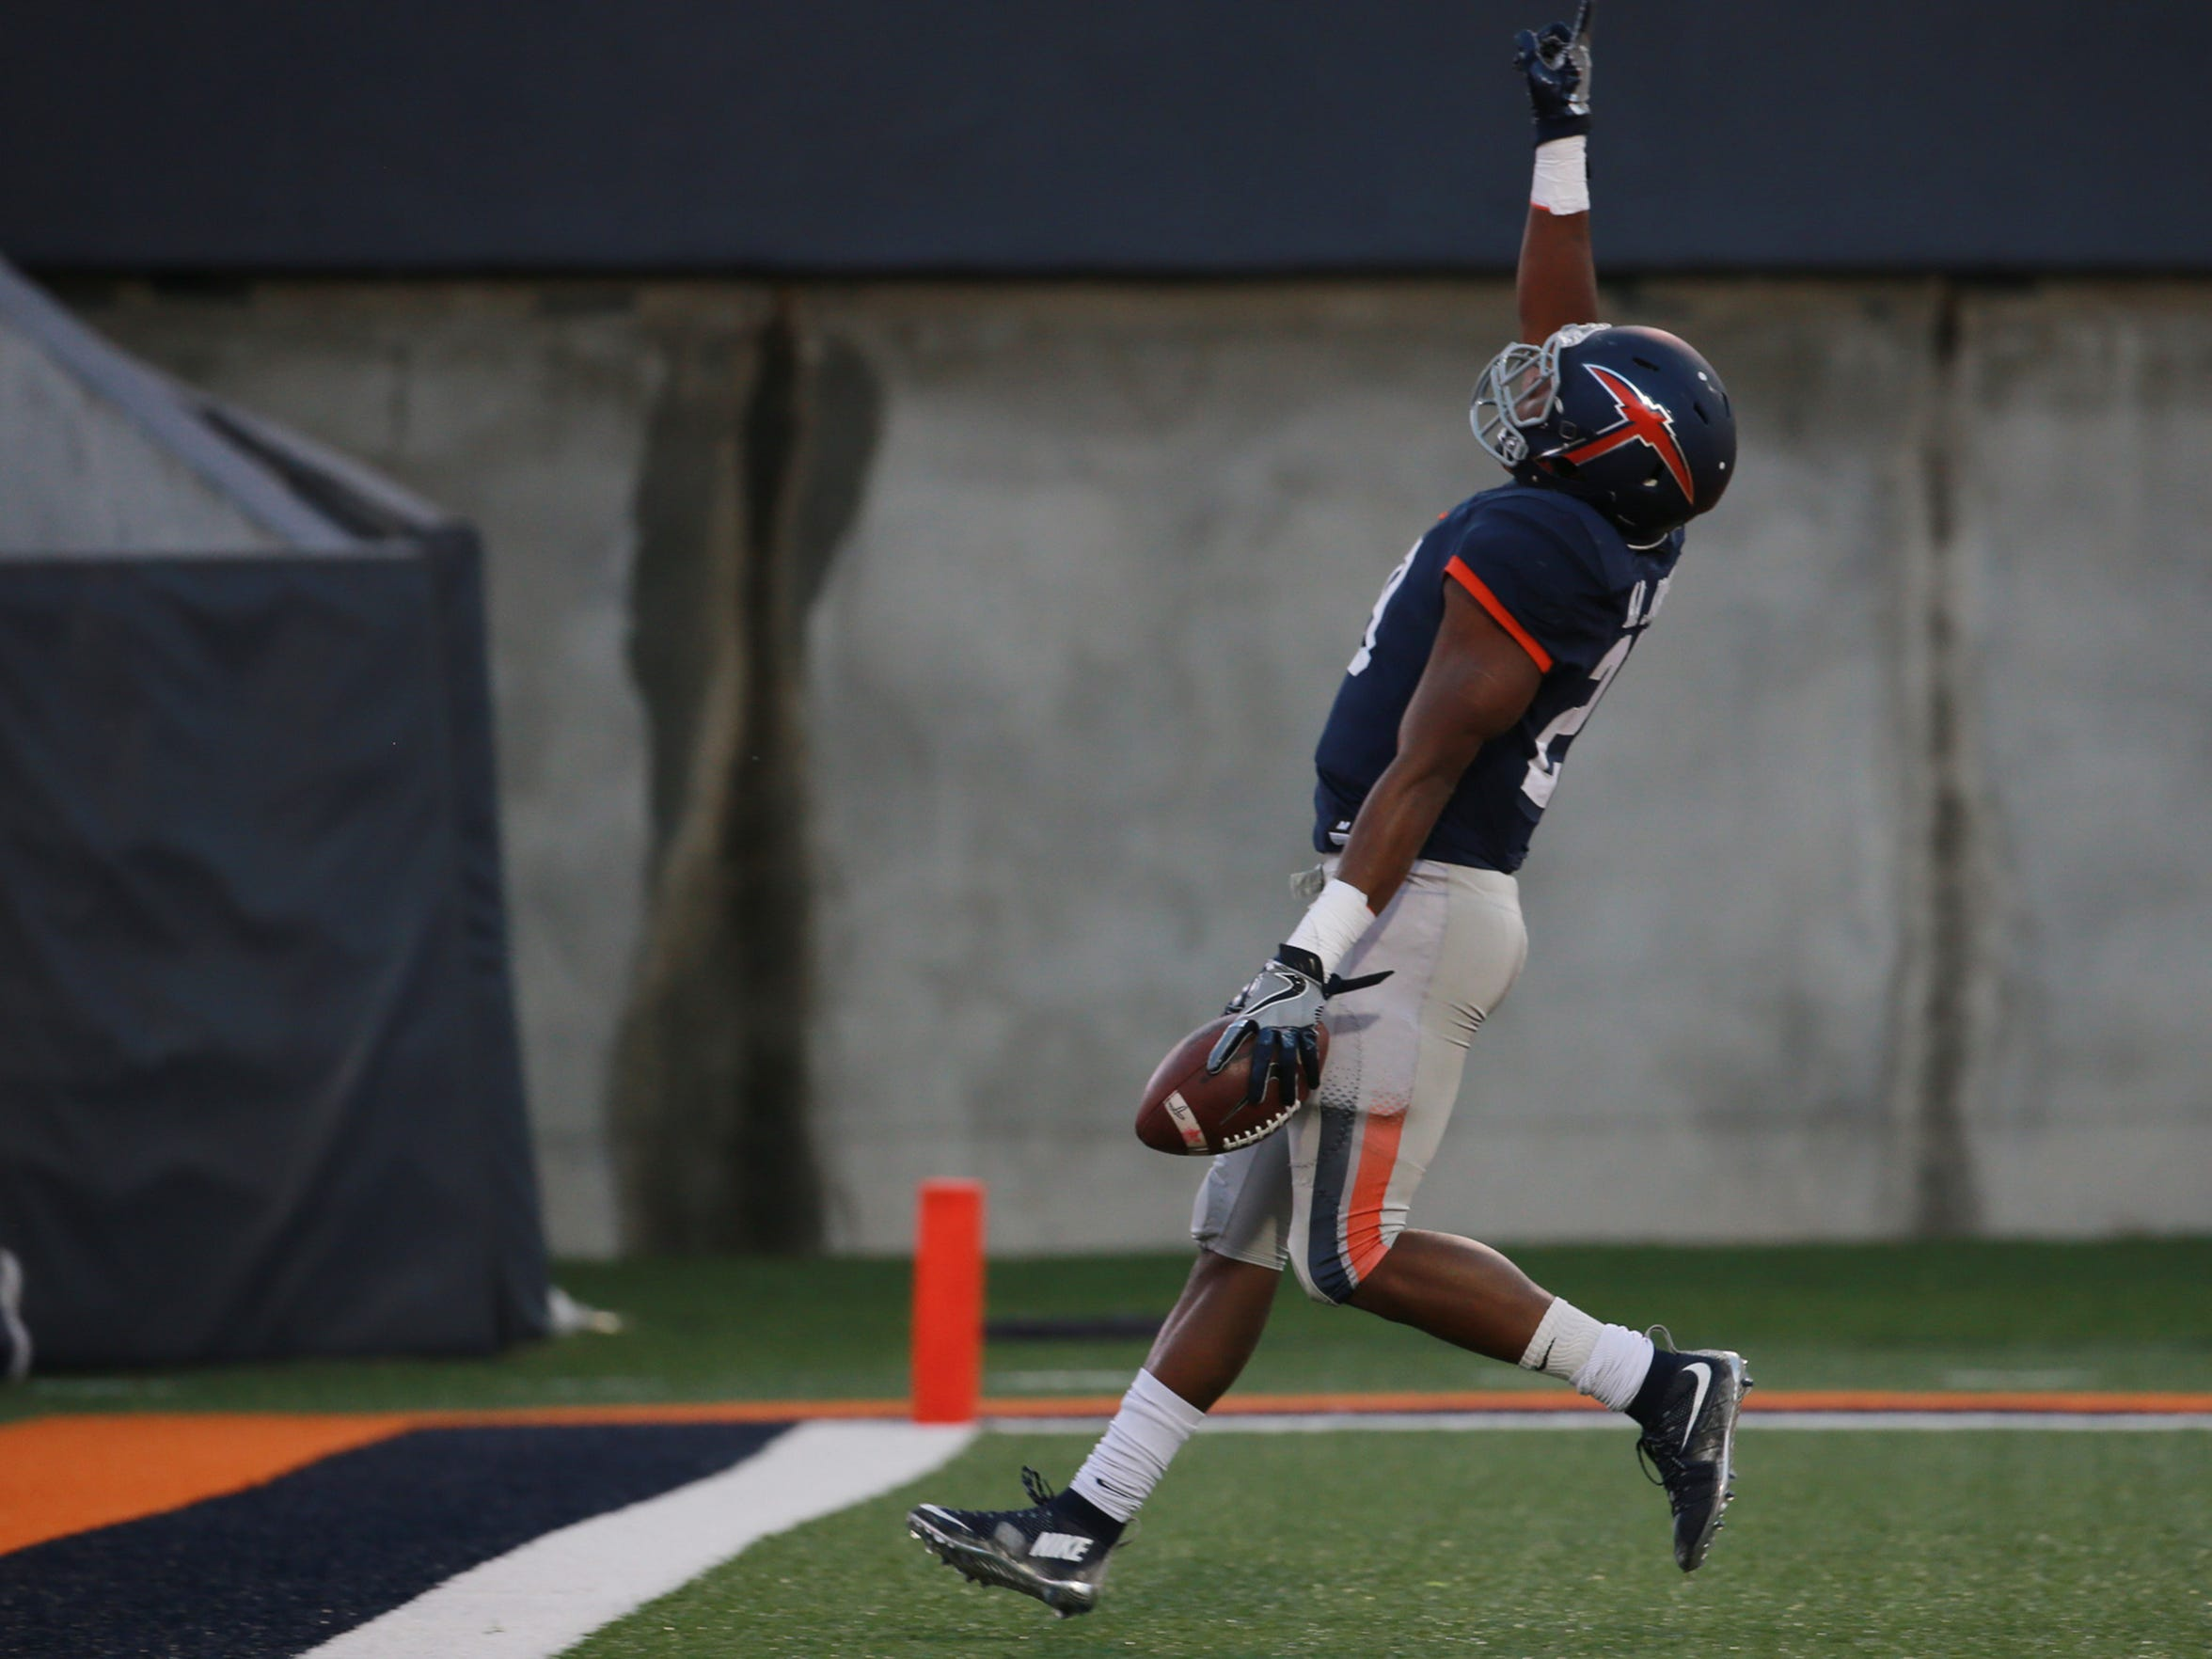 UTEP's Aaron Jones points heavenward after running